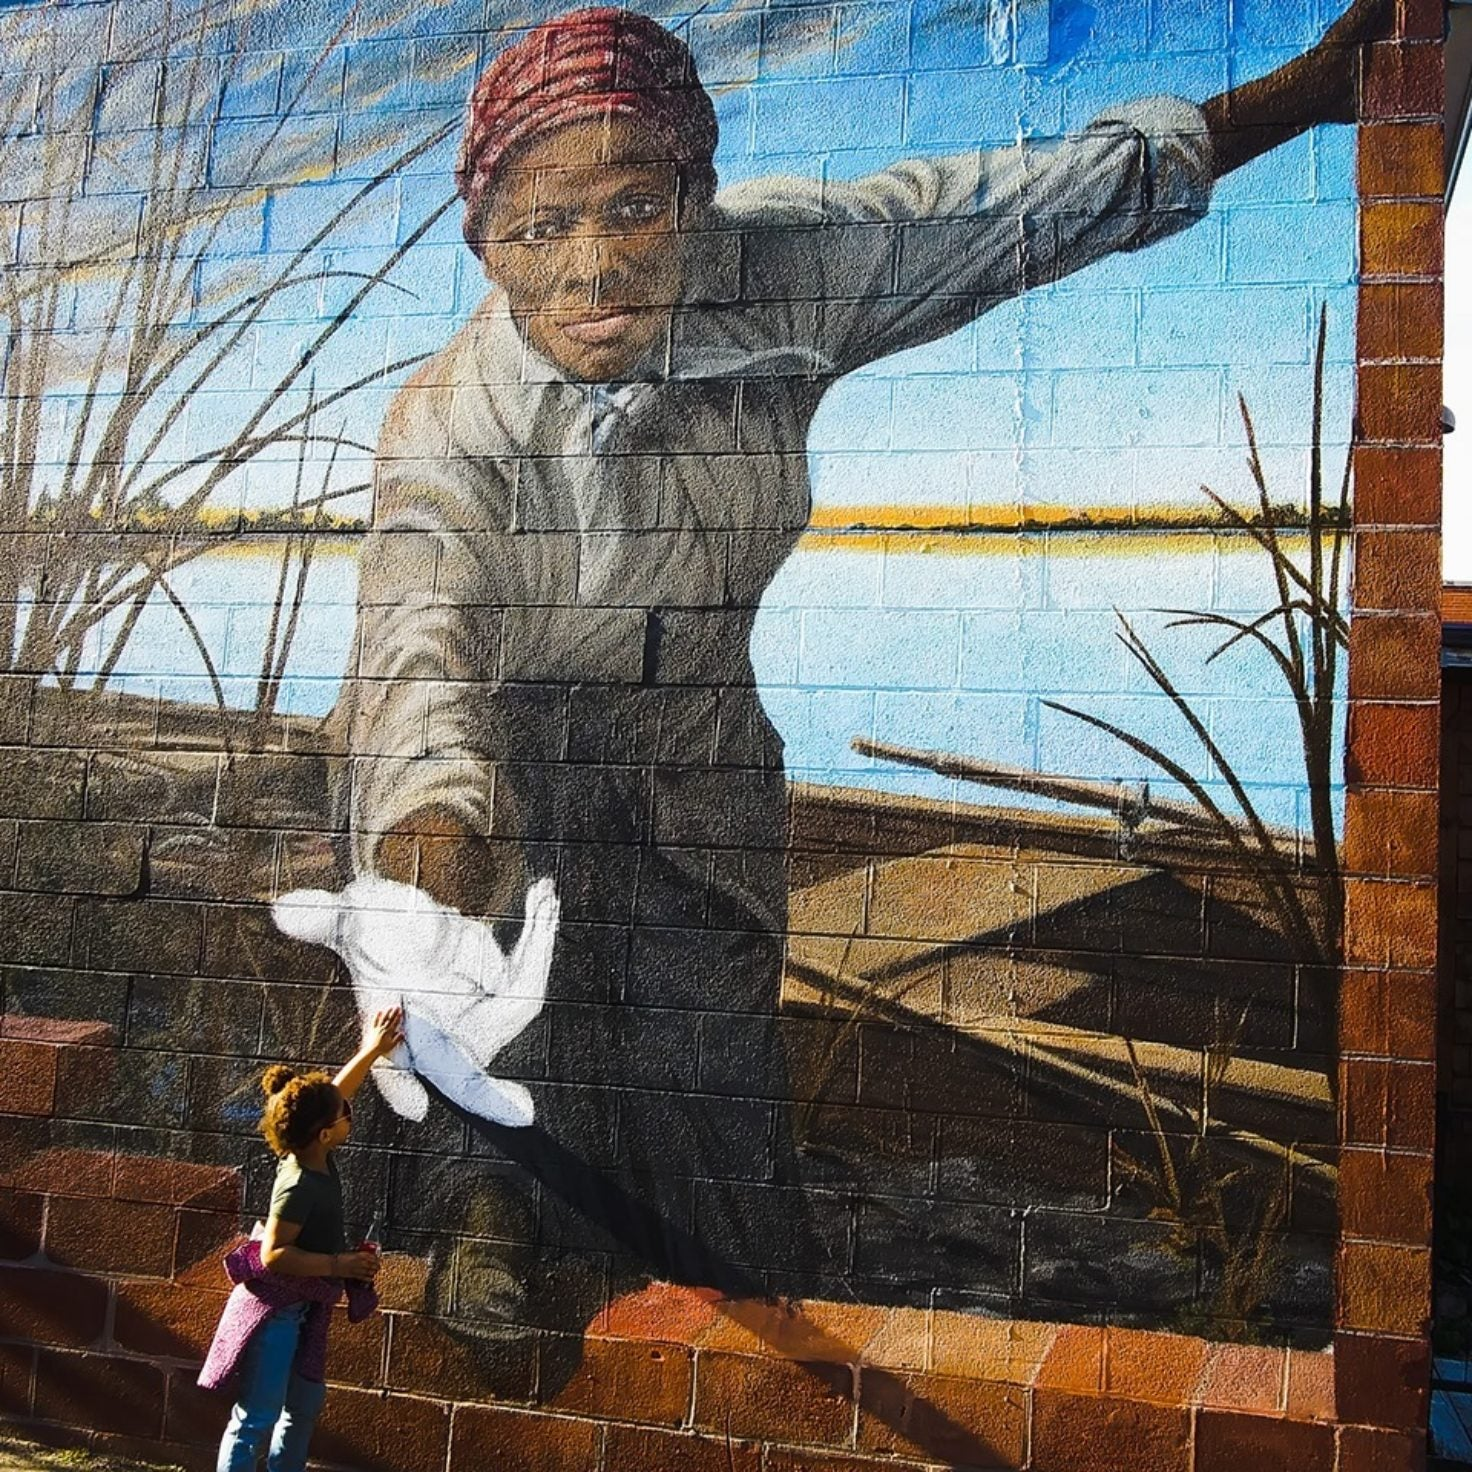 Photo Of 3-Year-Old Girl Touching A Harriet Tubman Mural Is Inspiring People Everywhere